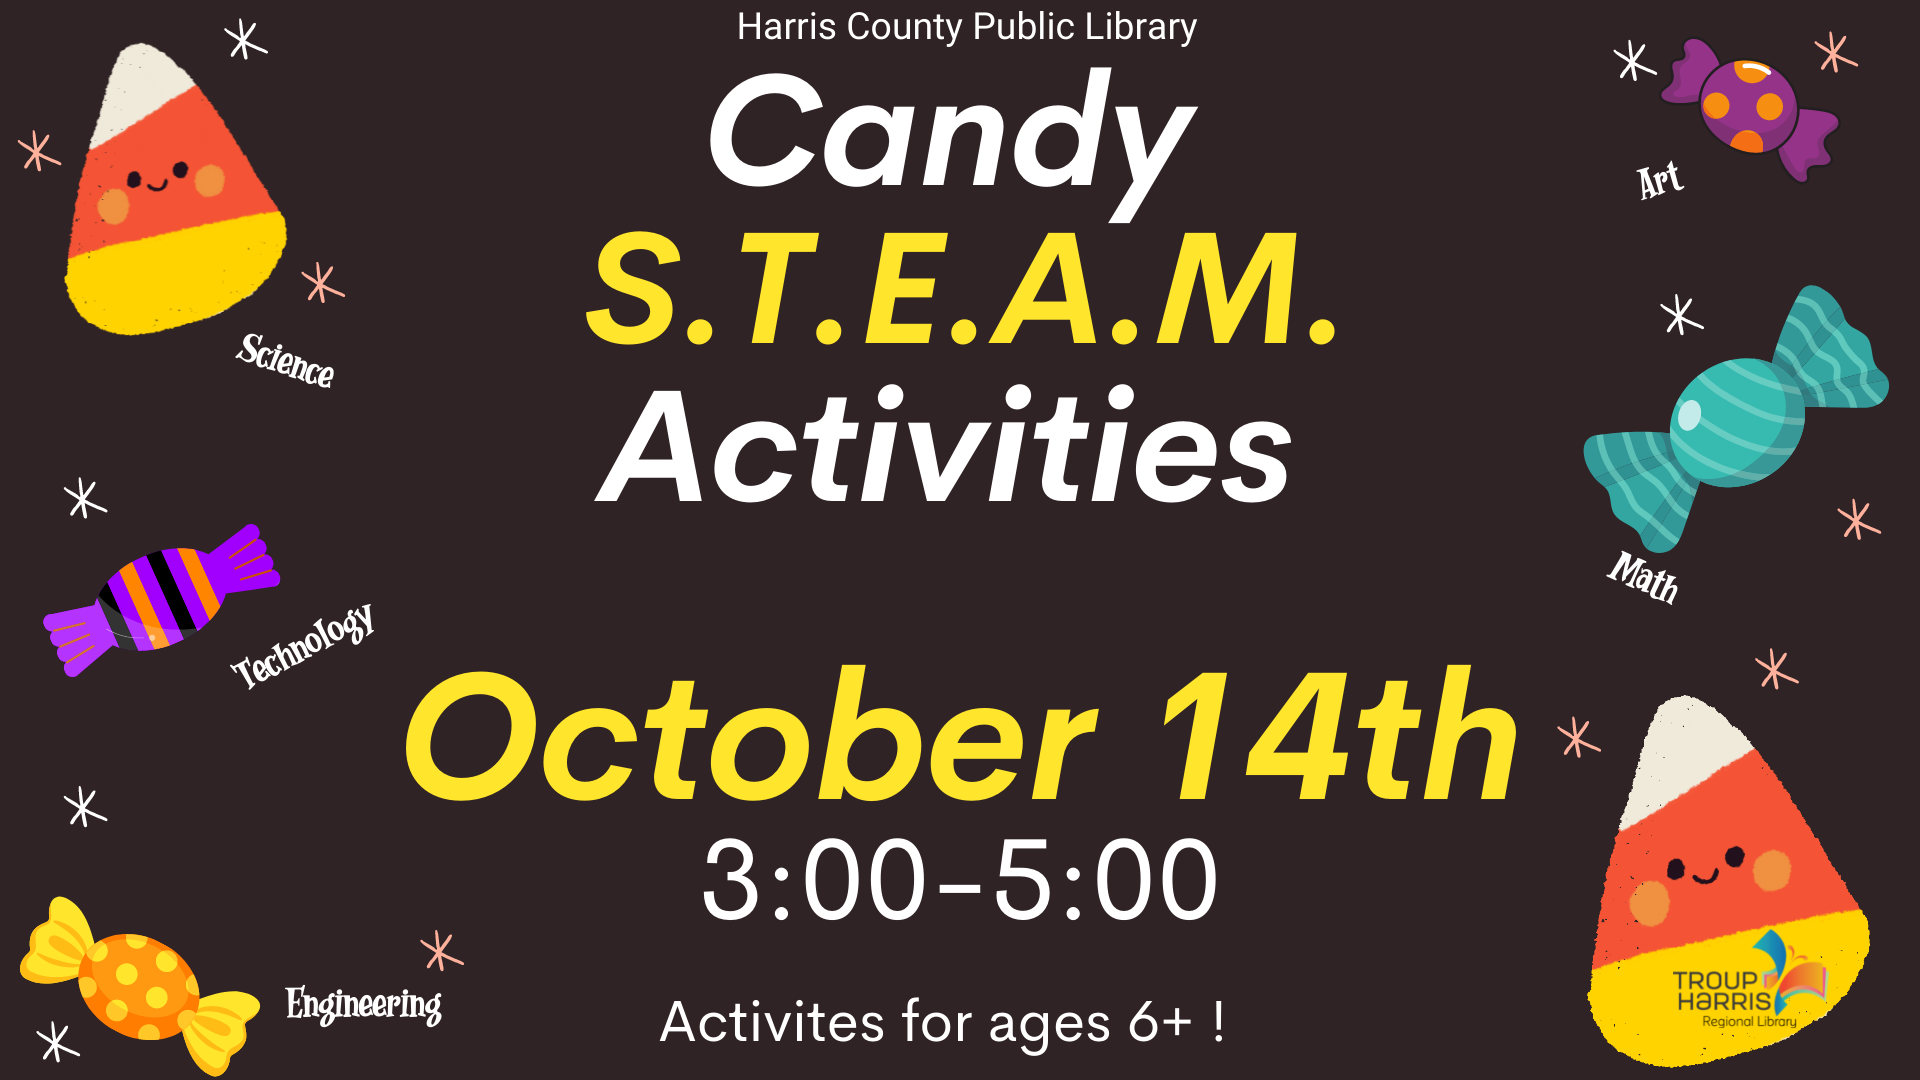 Does your child love science? We'll have some fun science activity stations set up at the Harris County Public Library from 3 to 5 PM on October 14. Your kids will take home a special candy treat!